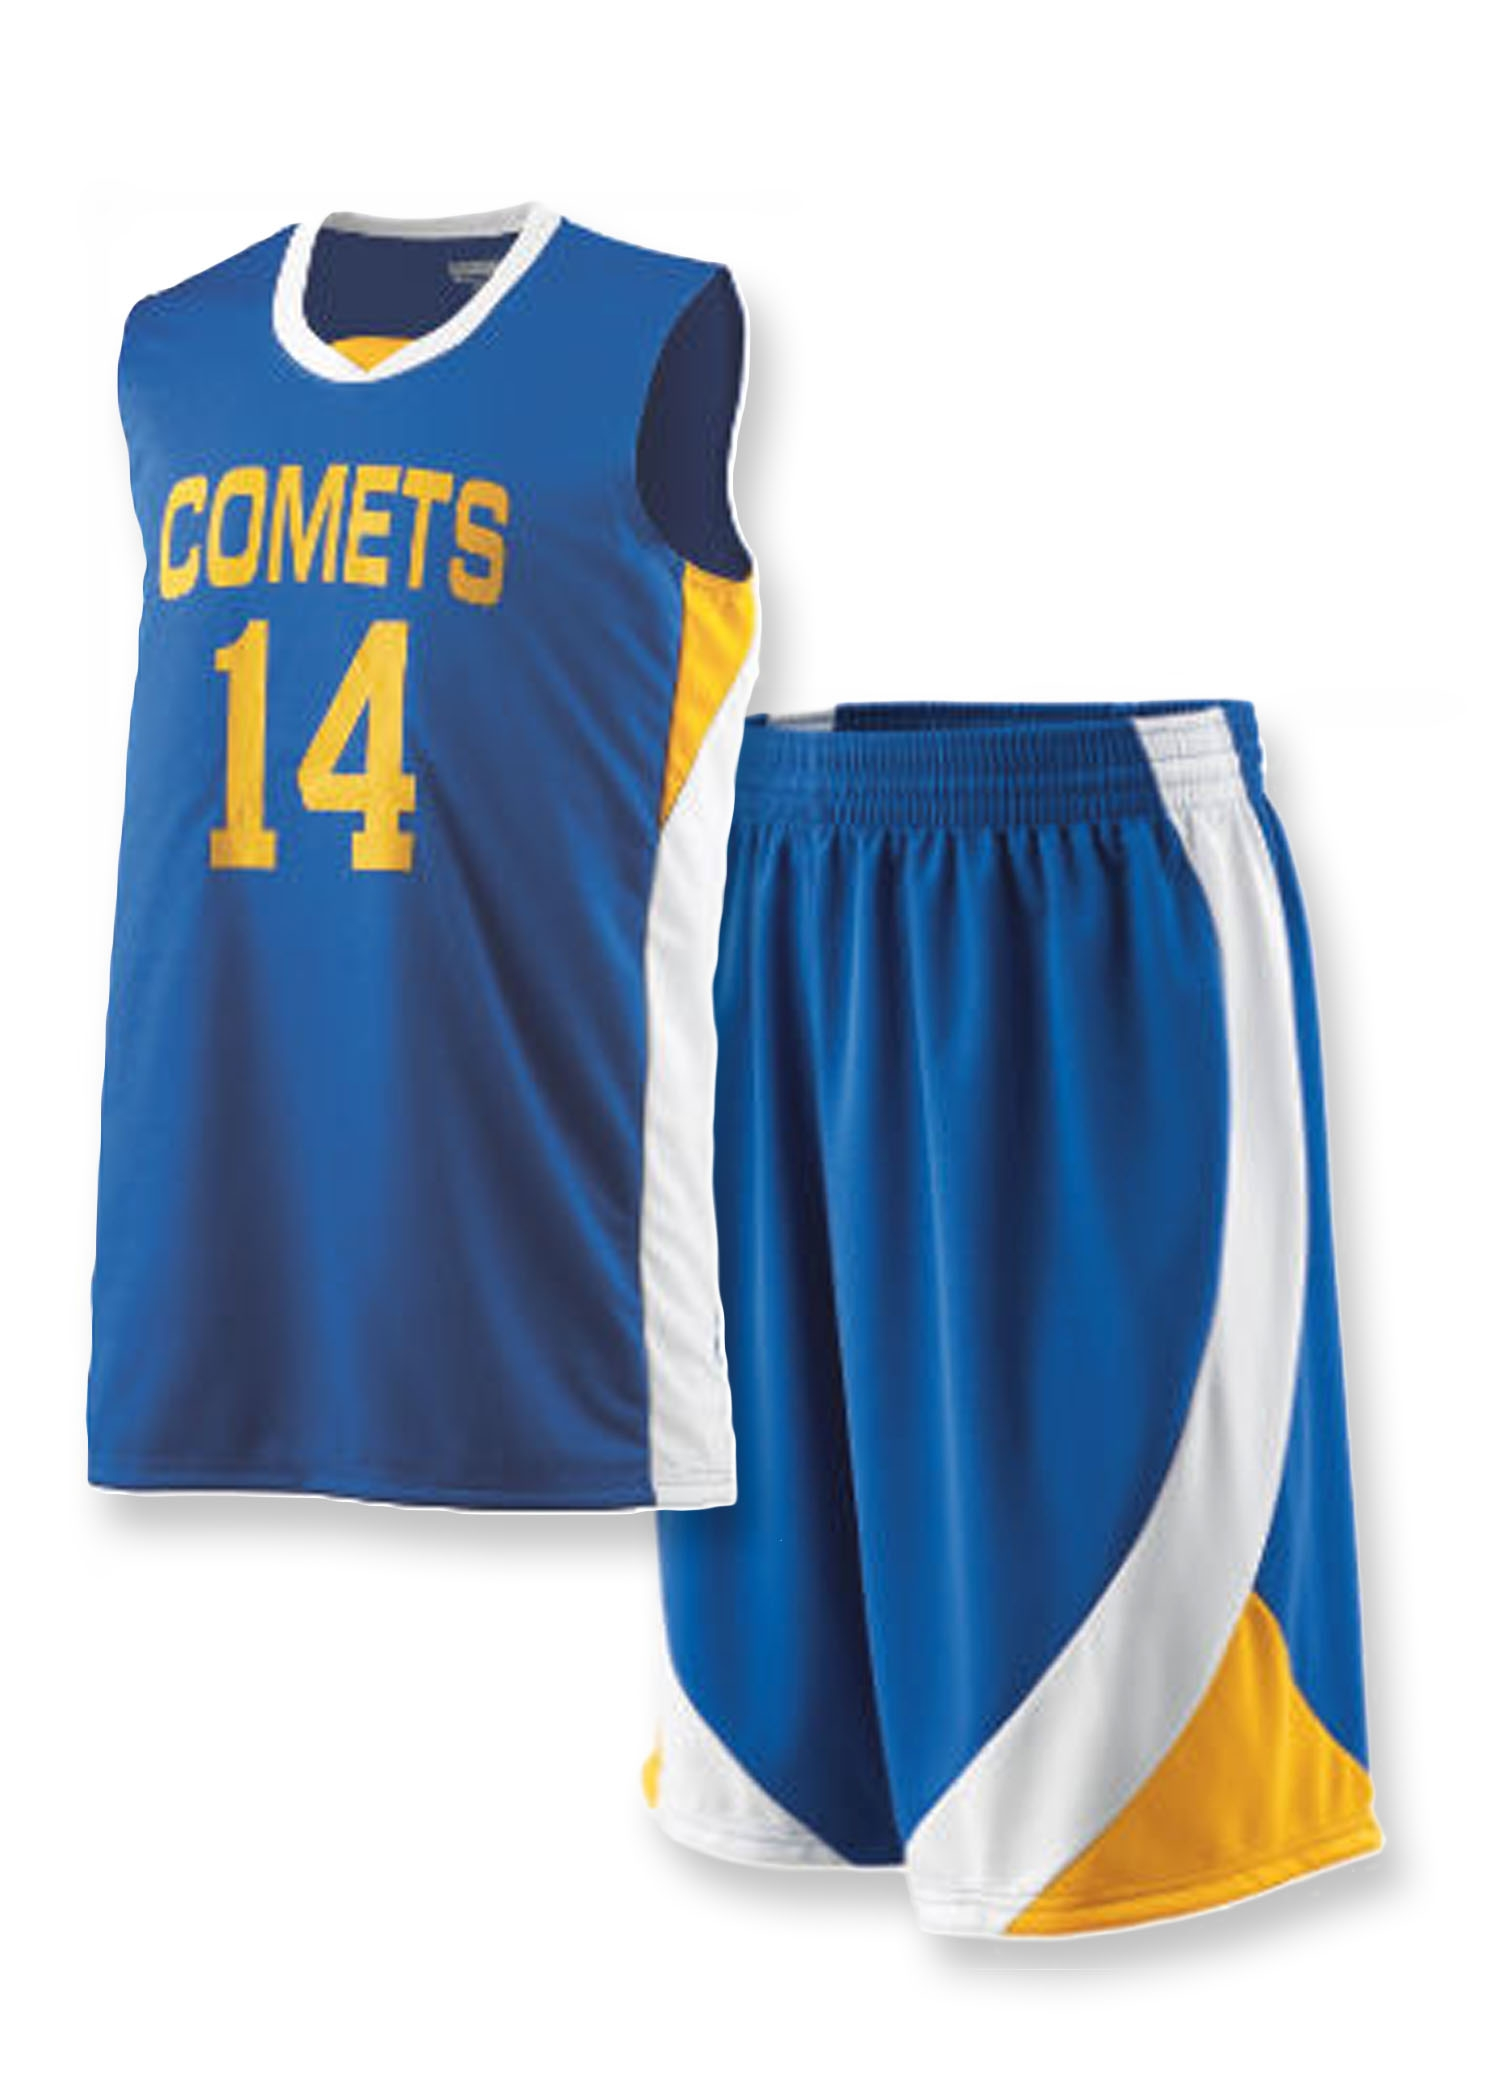 Youth Team Basketball Uniform Package with Graphics